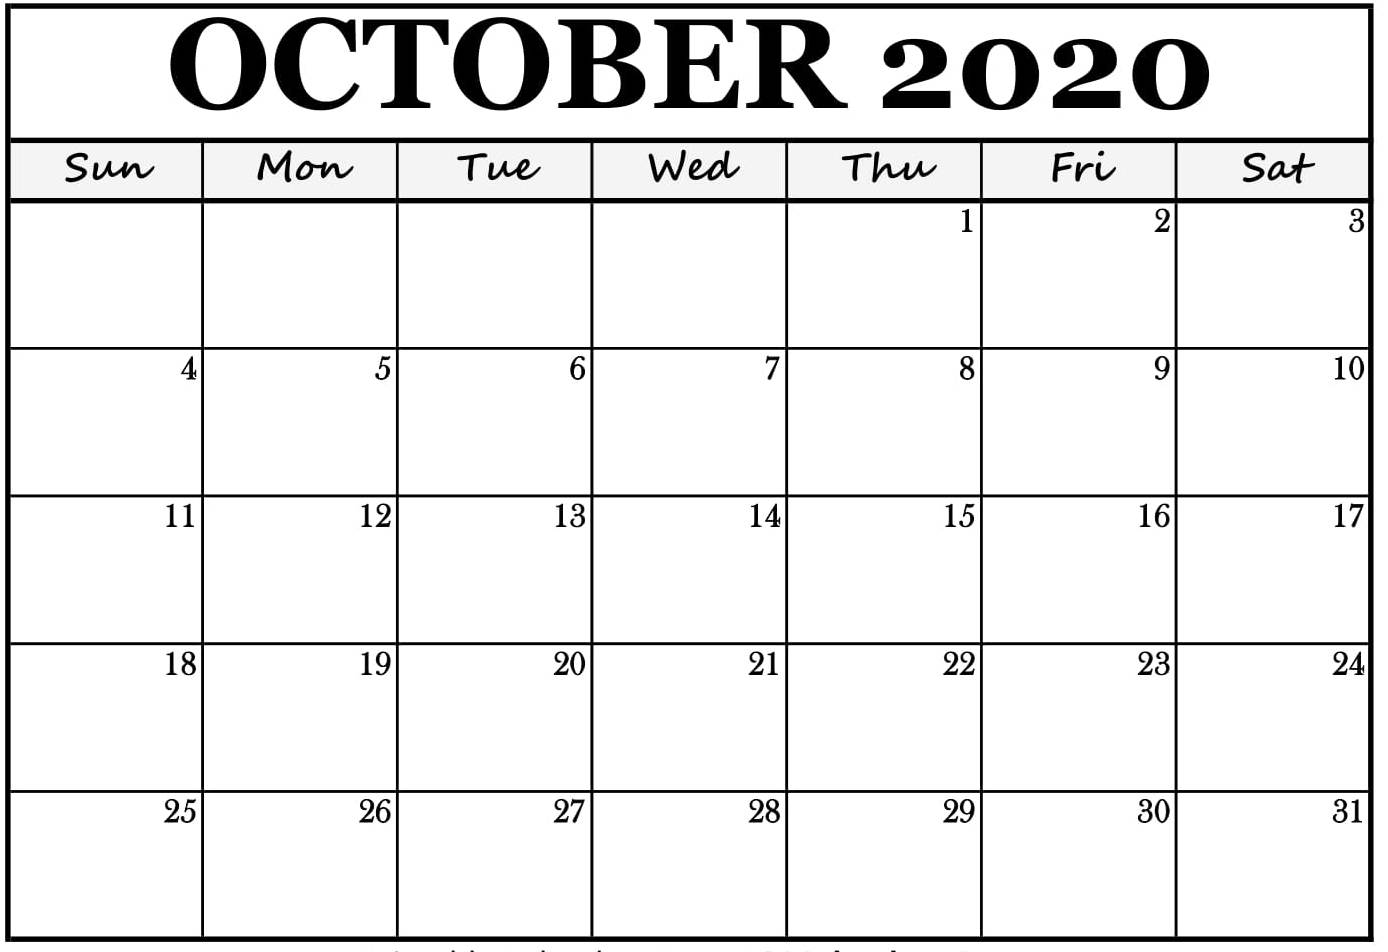 Blank October 2020 Calendar Printable With Notes Pdf - Set